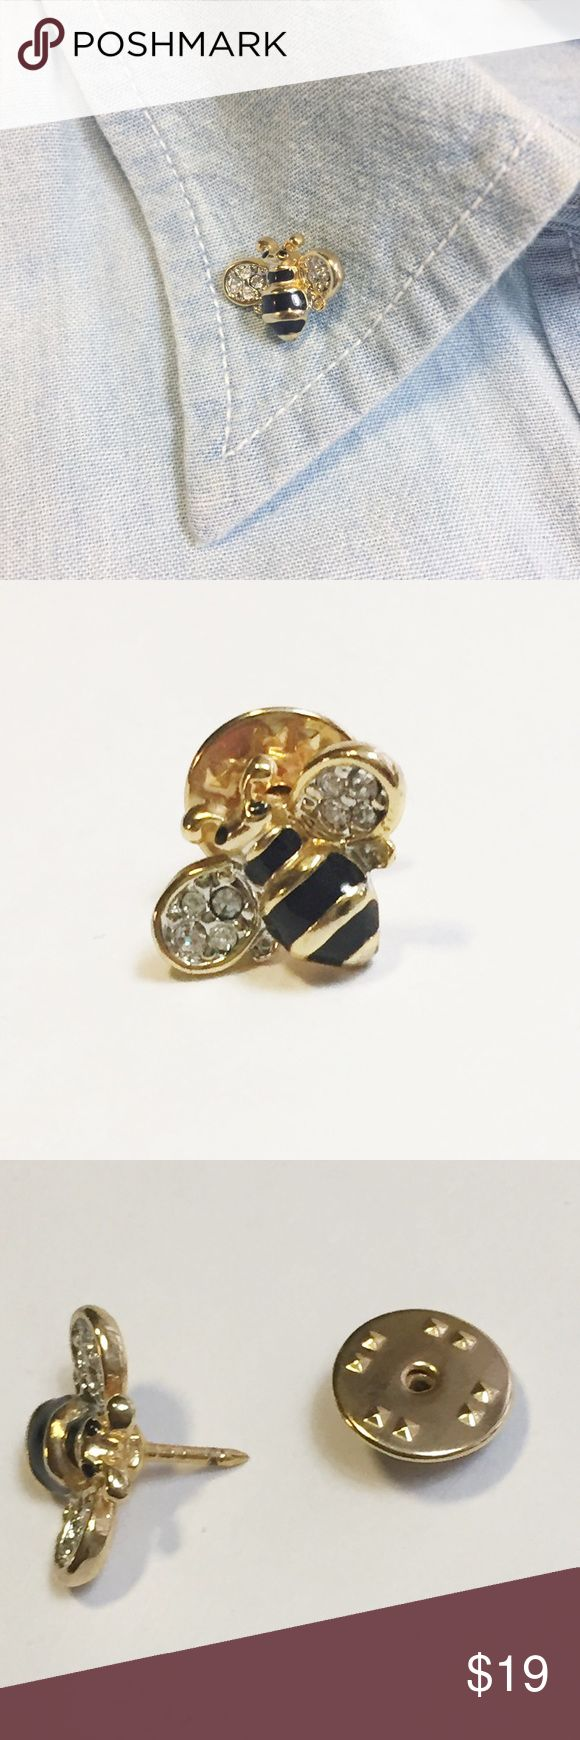 Enamel Bumble Bee Pin with Crystals Enamel Bumble Bee Pin with Crystals. Yellow and black striped body with four sparkly crystals on either wing. Gold toned. Secure back keeps your pin in place! About the size of a dime (see pictures for scale). Looks lovely on a lapel, jacket, or bag!  Excellent pre-loved condition! No flaws. 🛍15% Off Bundles of 2+ Items! Jewelry Brooches